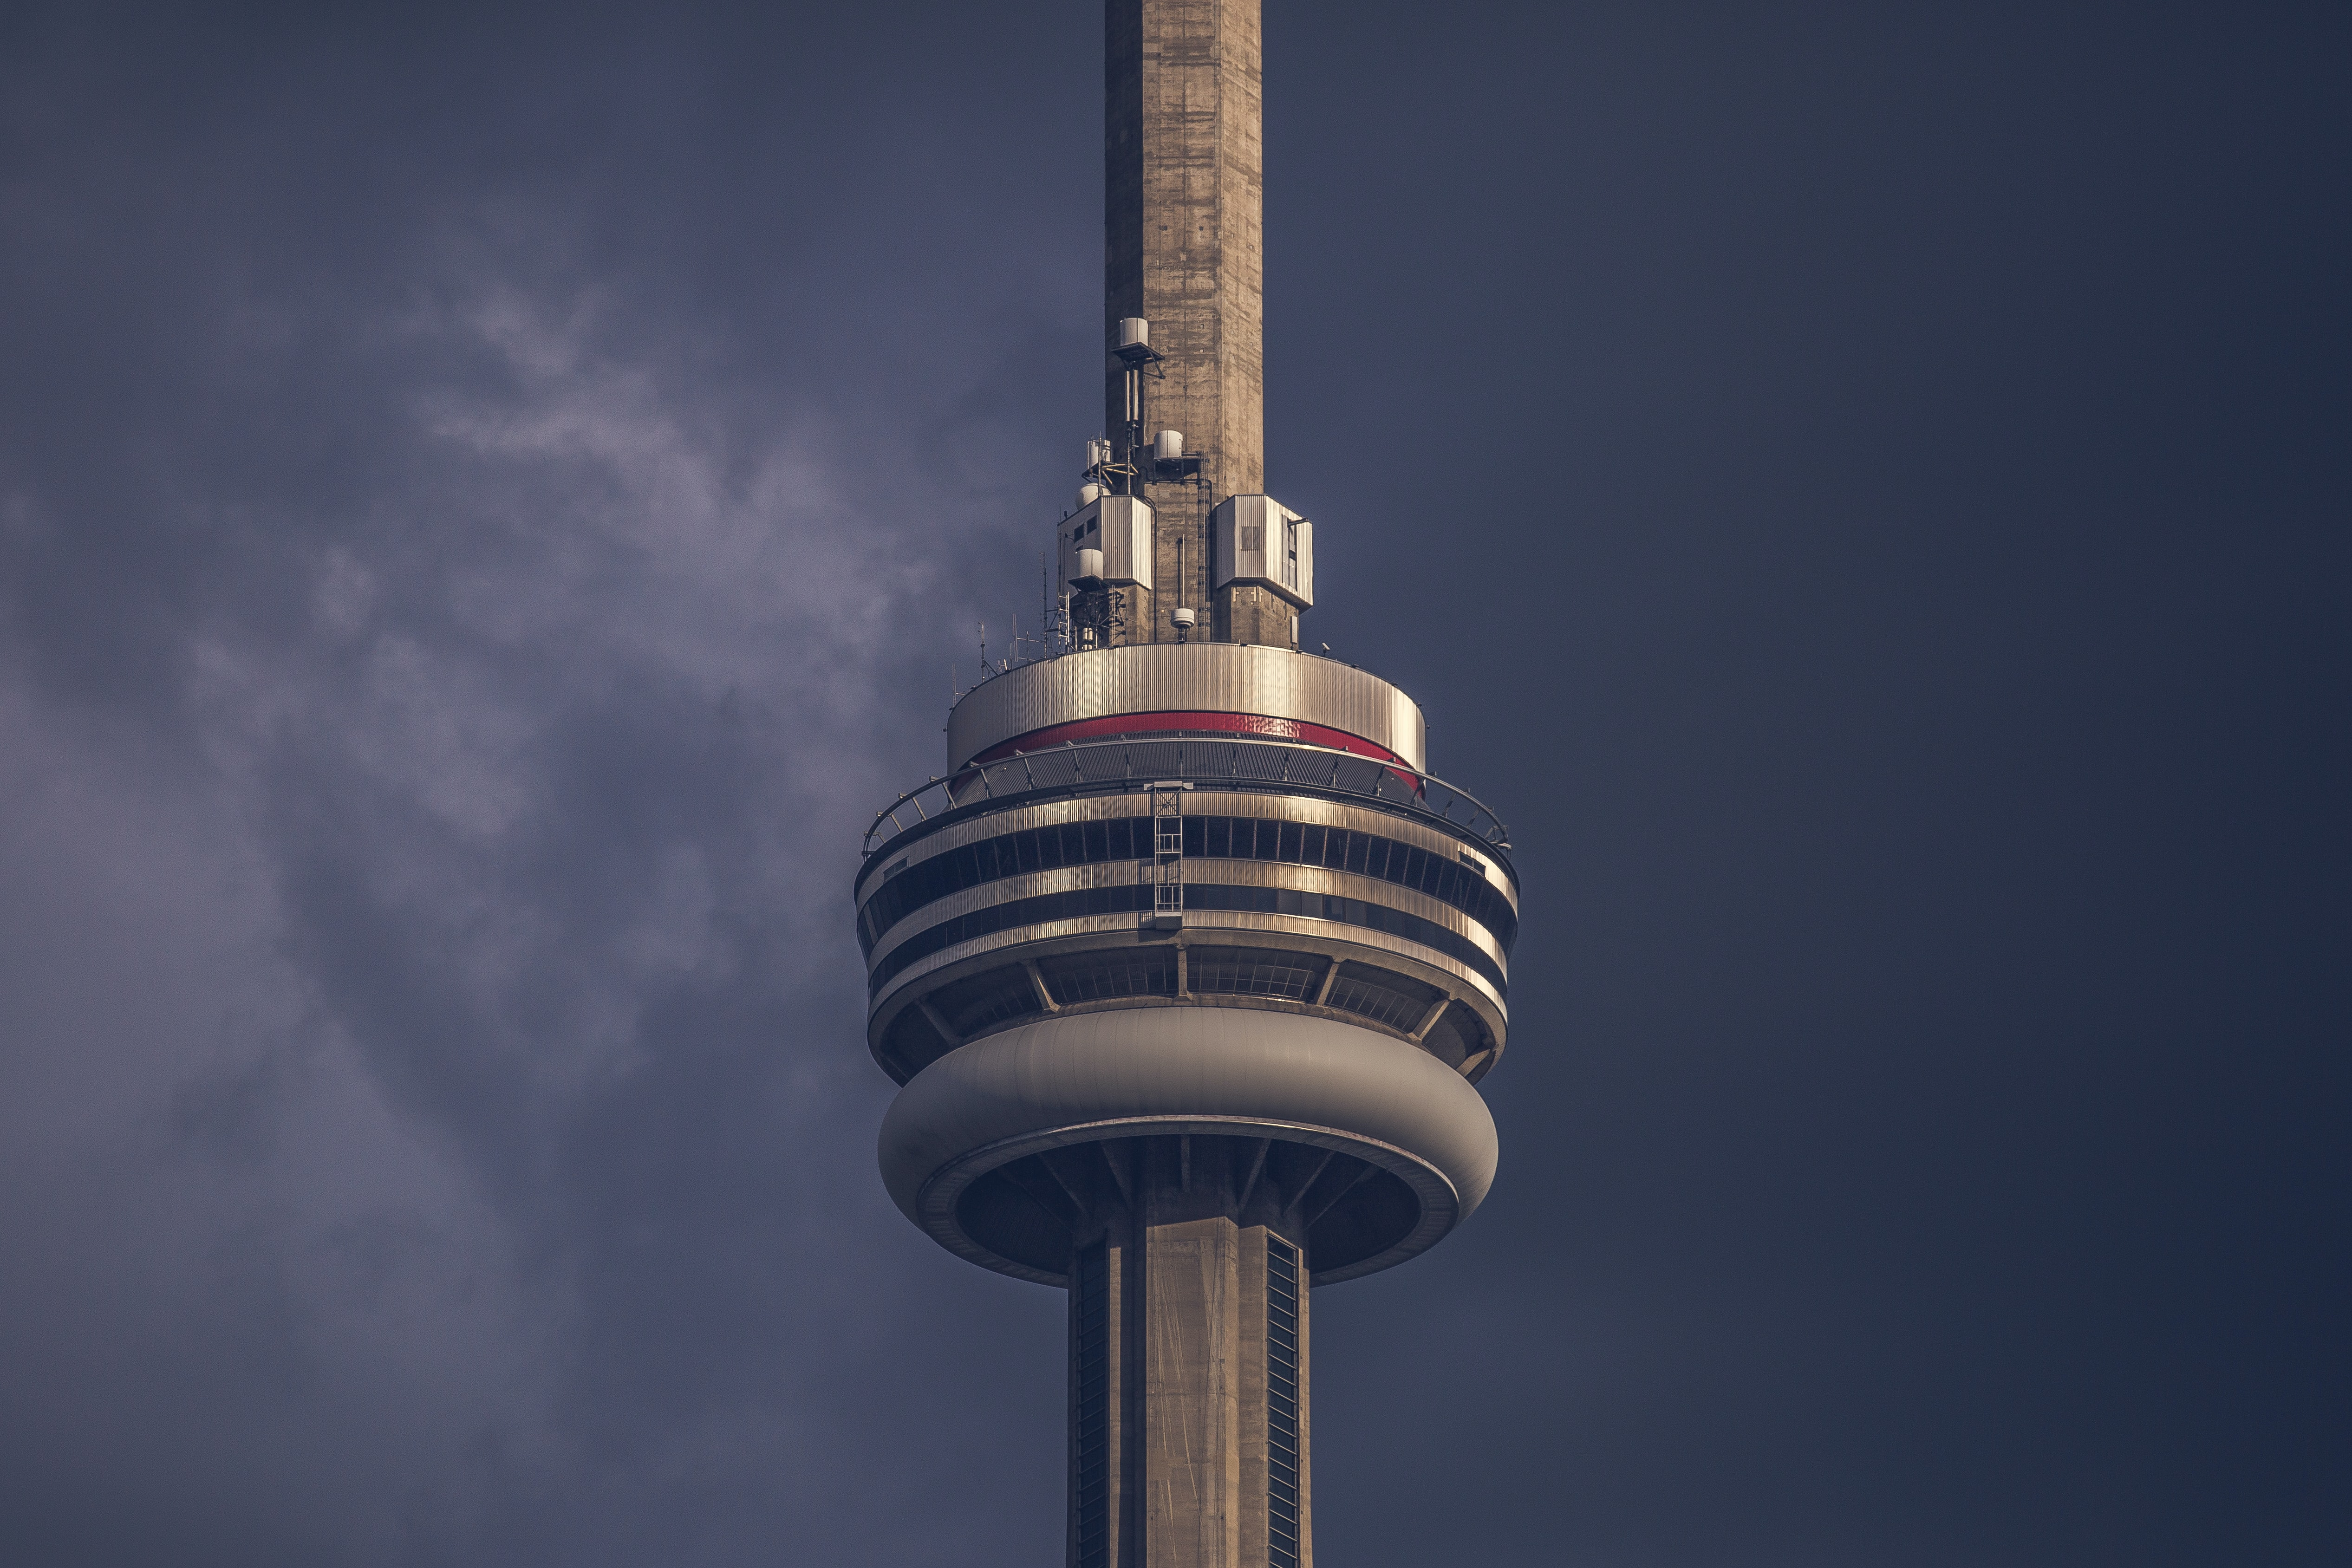 Toronto's CN Tower building on a dark gray sky